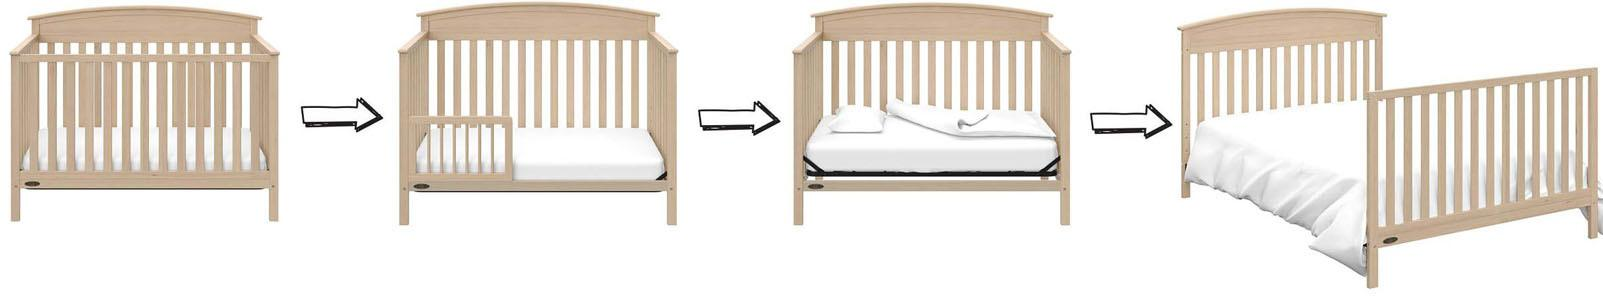 Different types of baby cribs: Convertible Crib